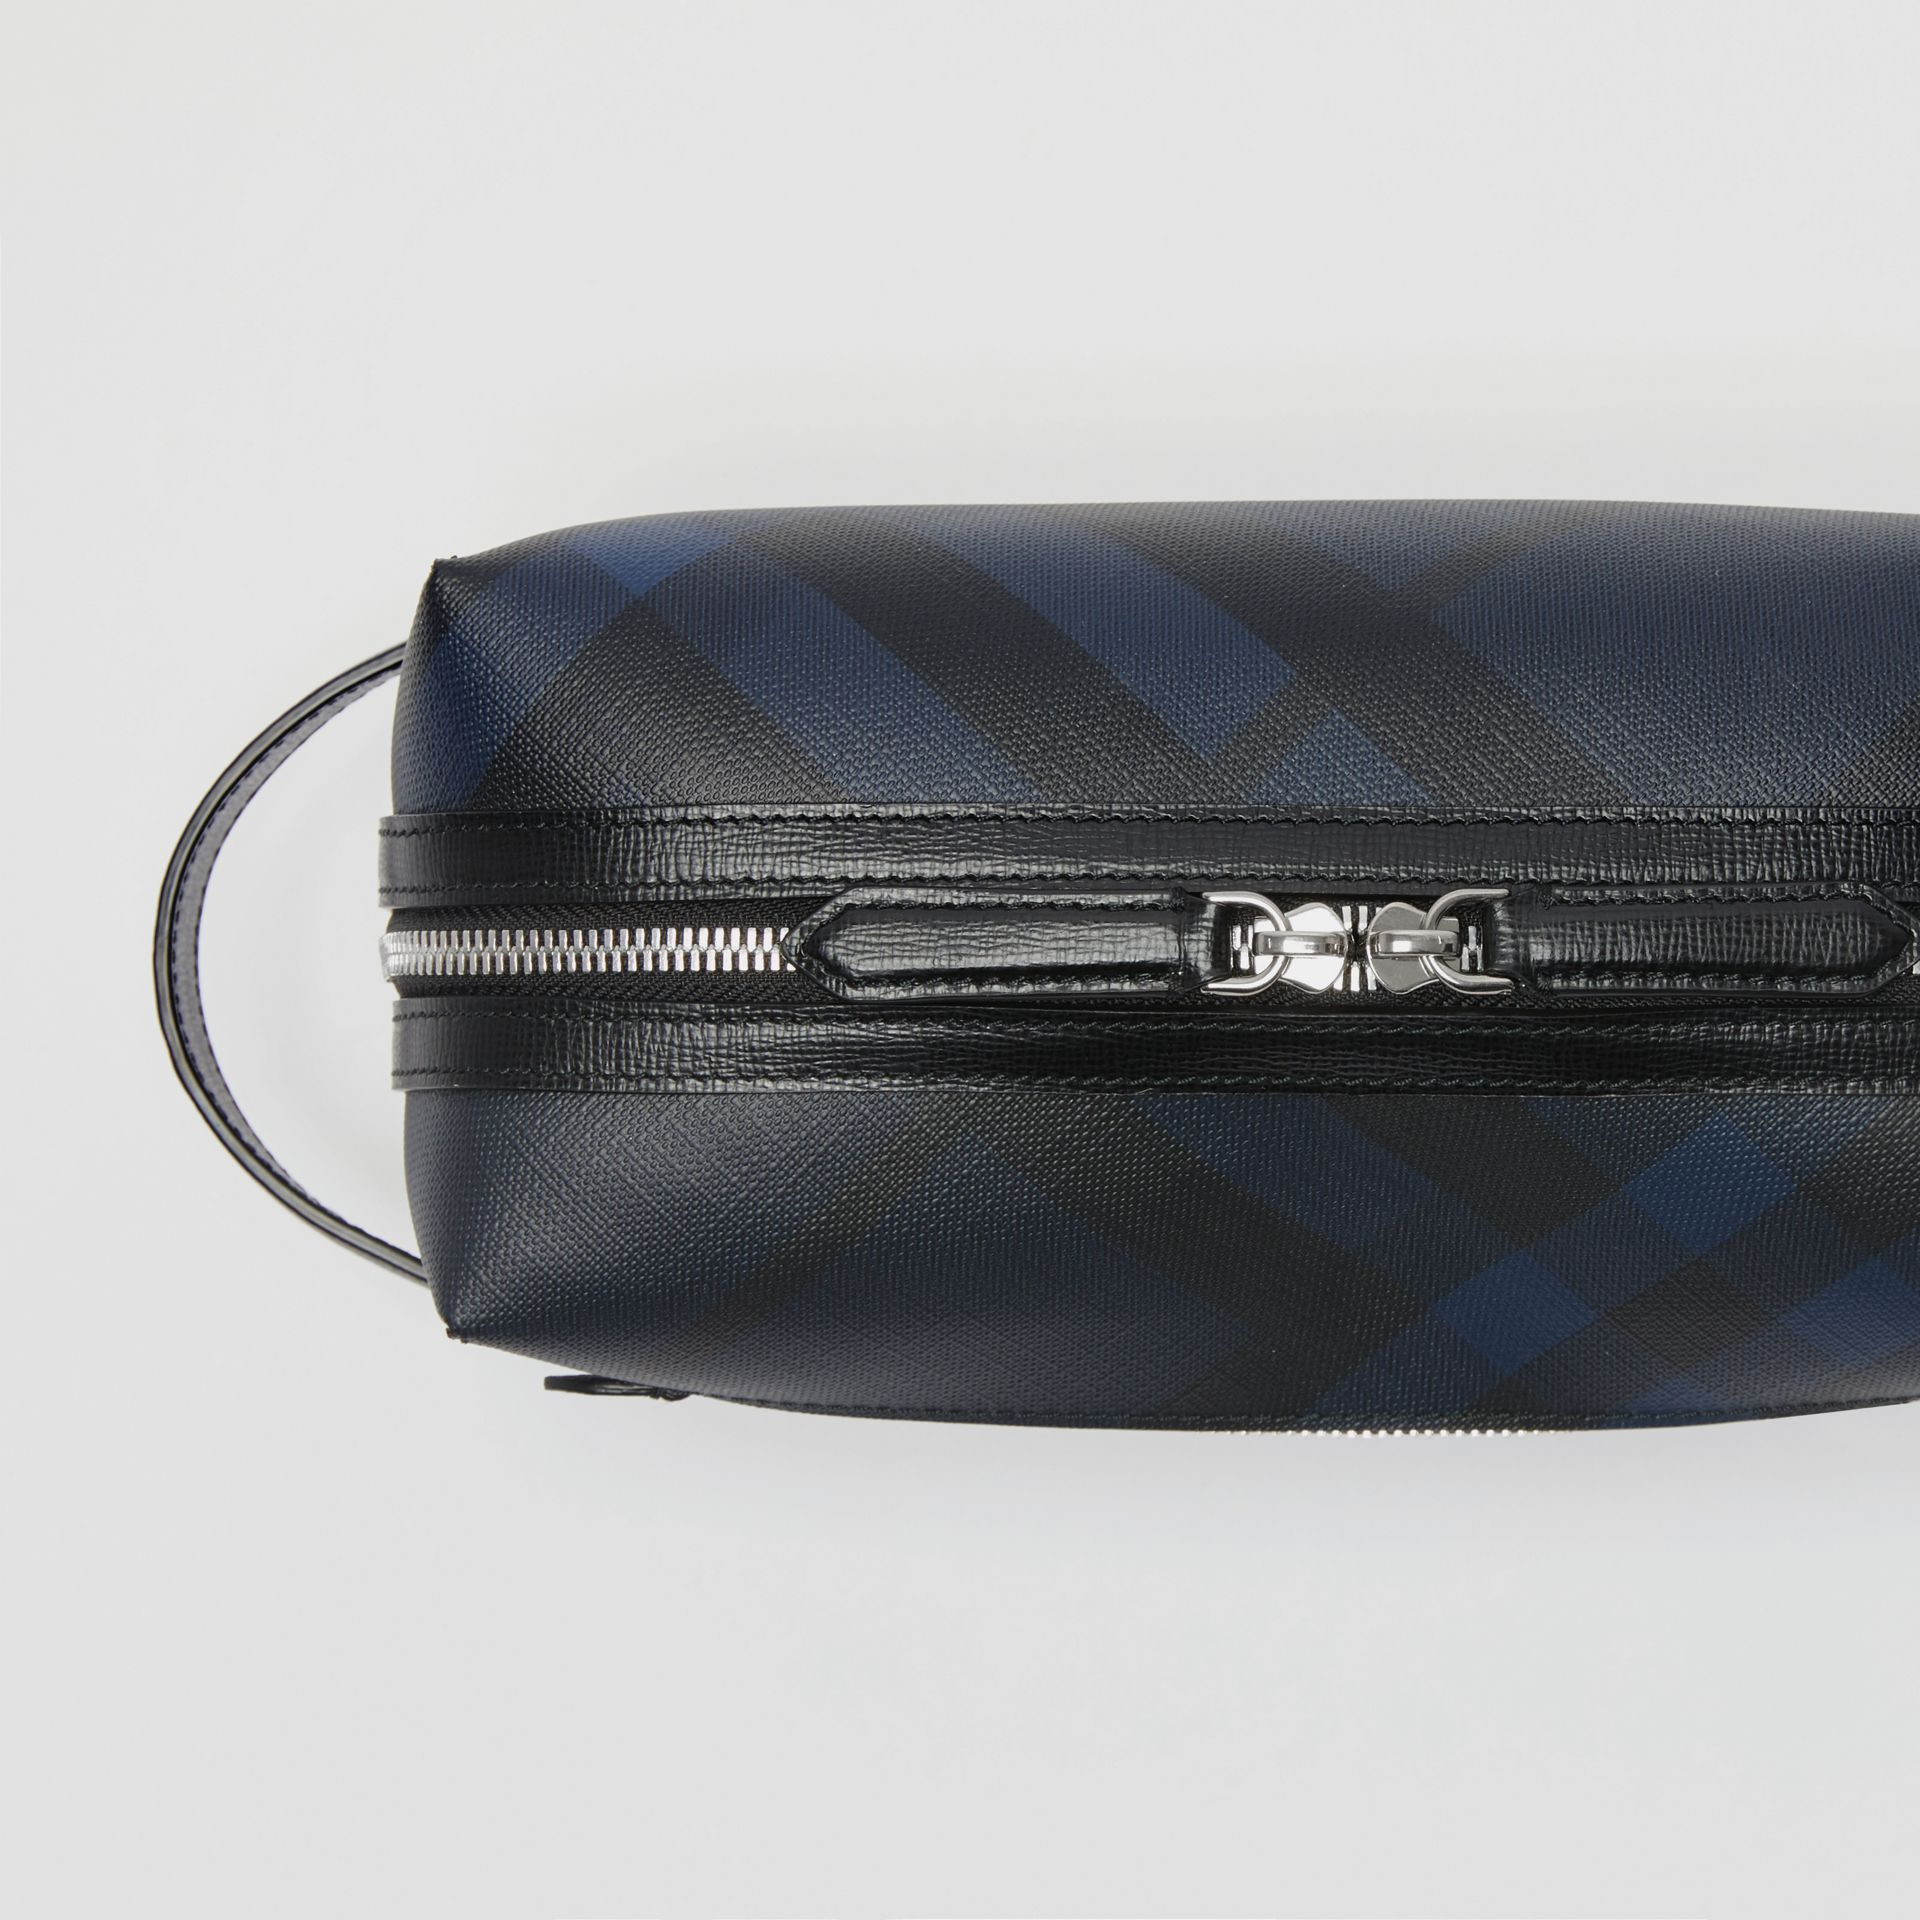 Trousse con pelle e motivo London check (Navy/nero) | Burberry - immagine della galleria 1